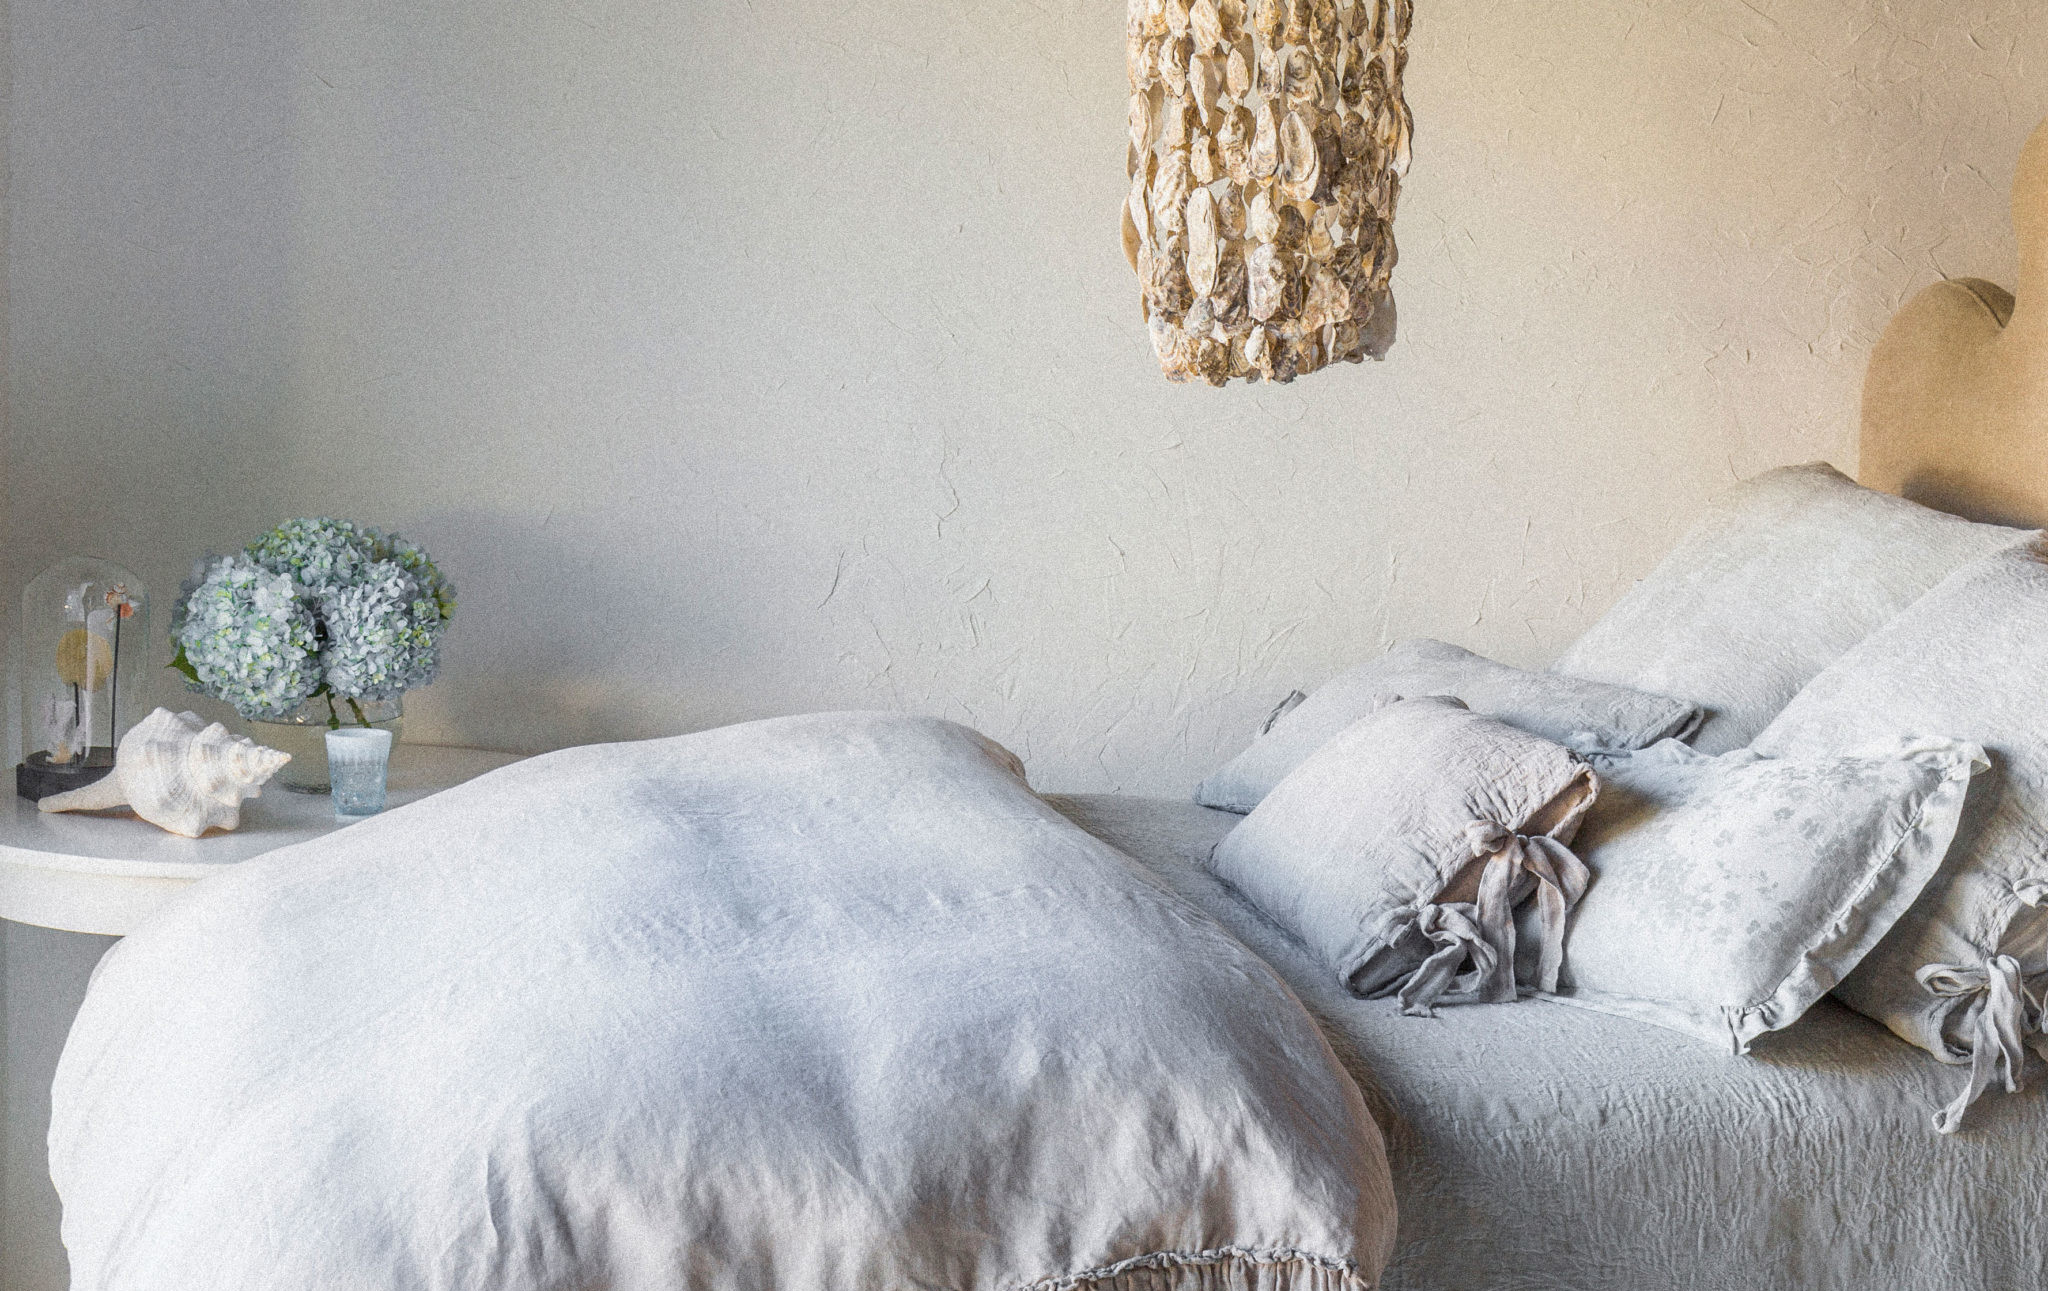 Fine linen bedding in natural colors